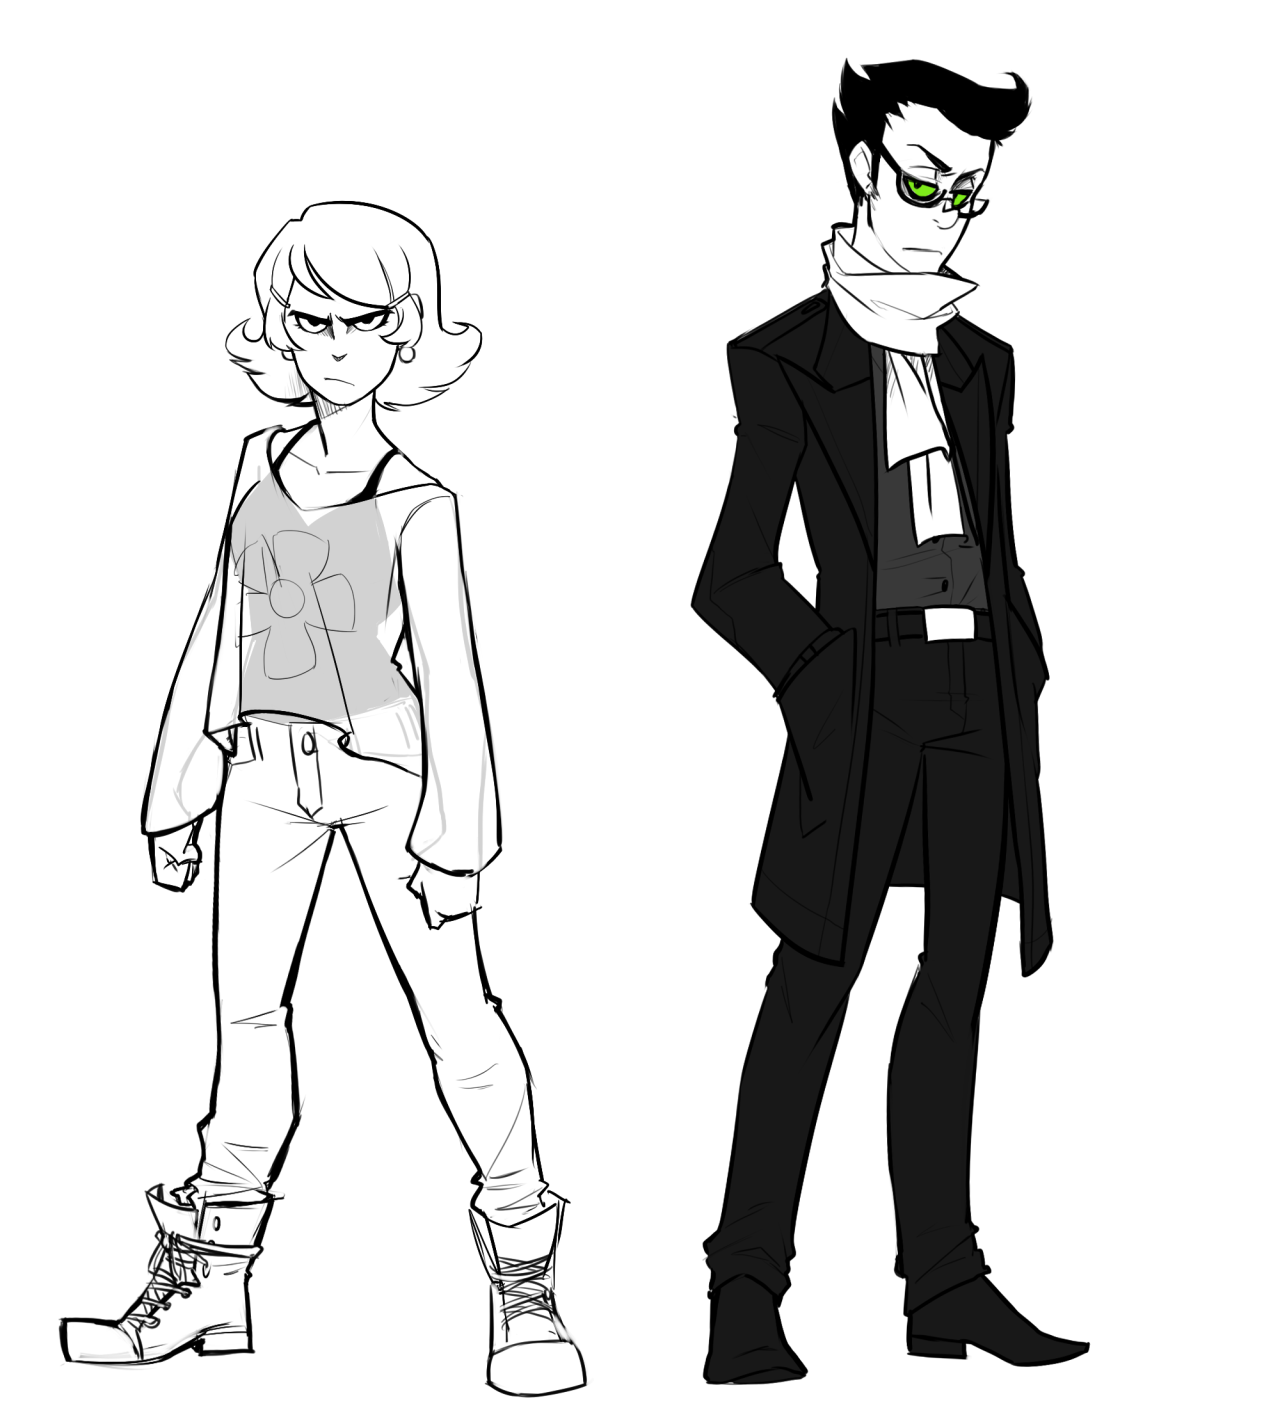 Drew two of my favorite kids from Grim Adventures of Billy and